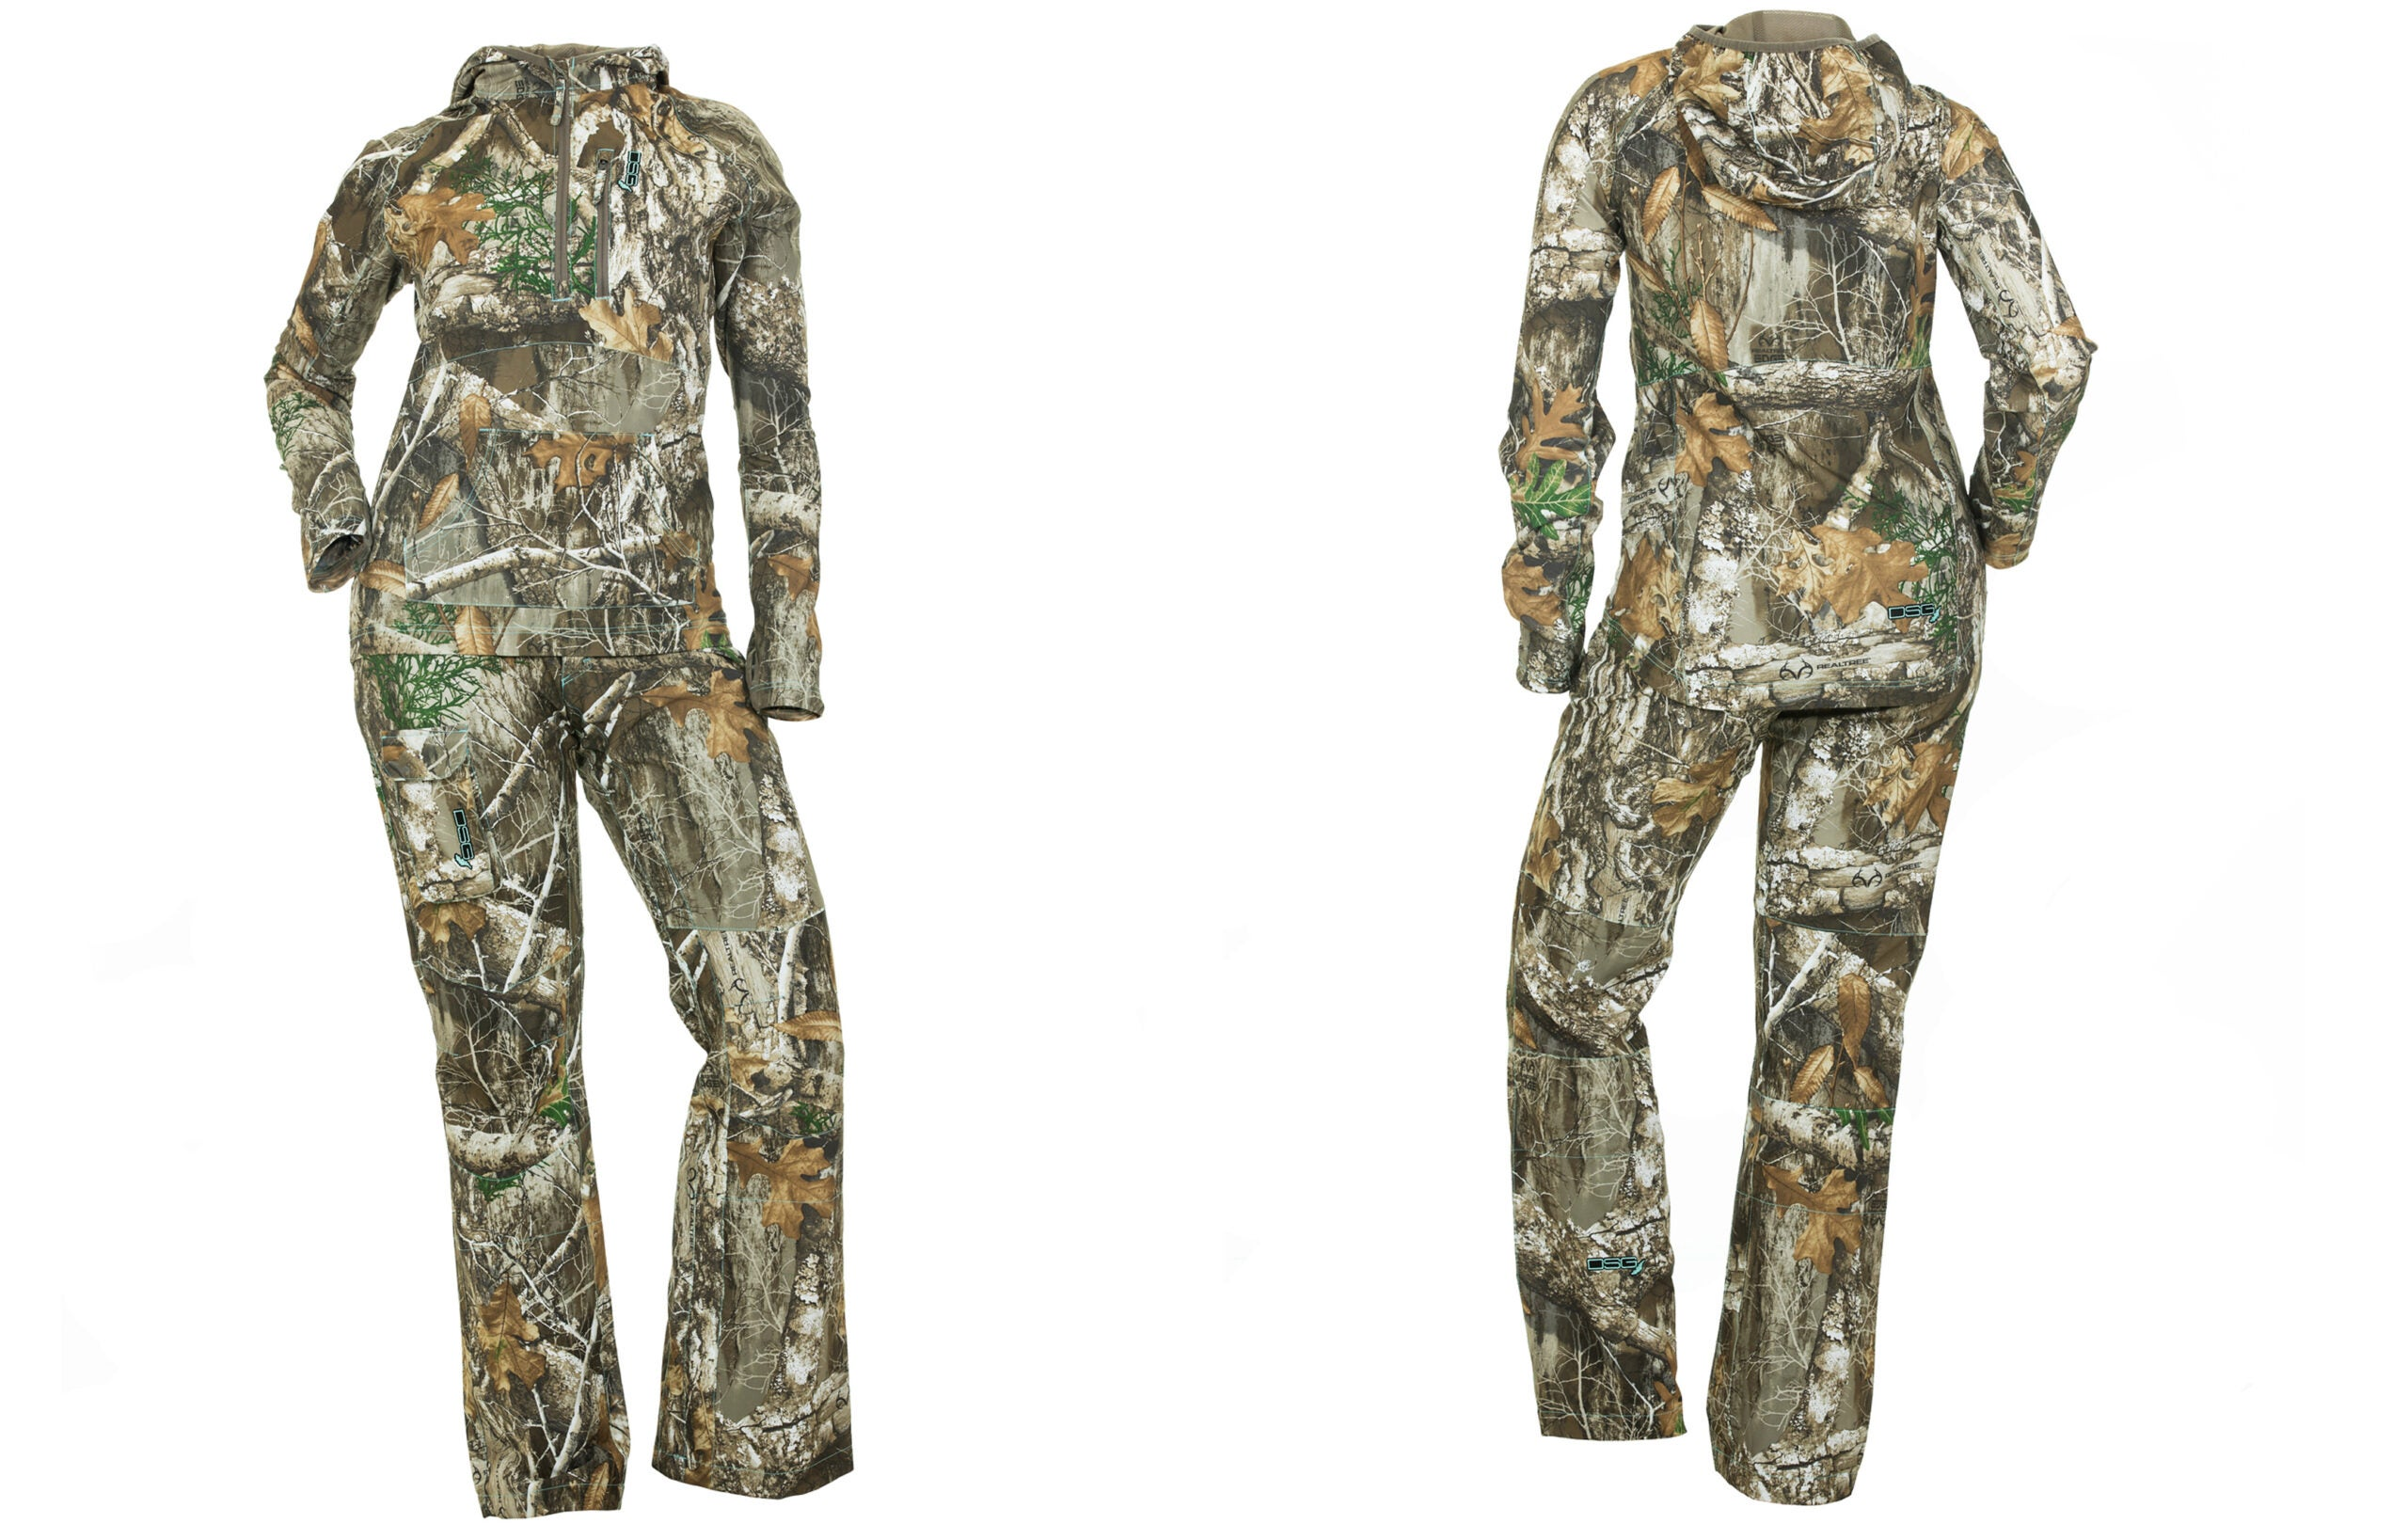 A top and bottom set of women's camo in Realtree Extra, on a white background.